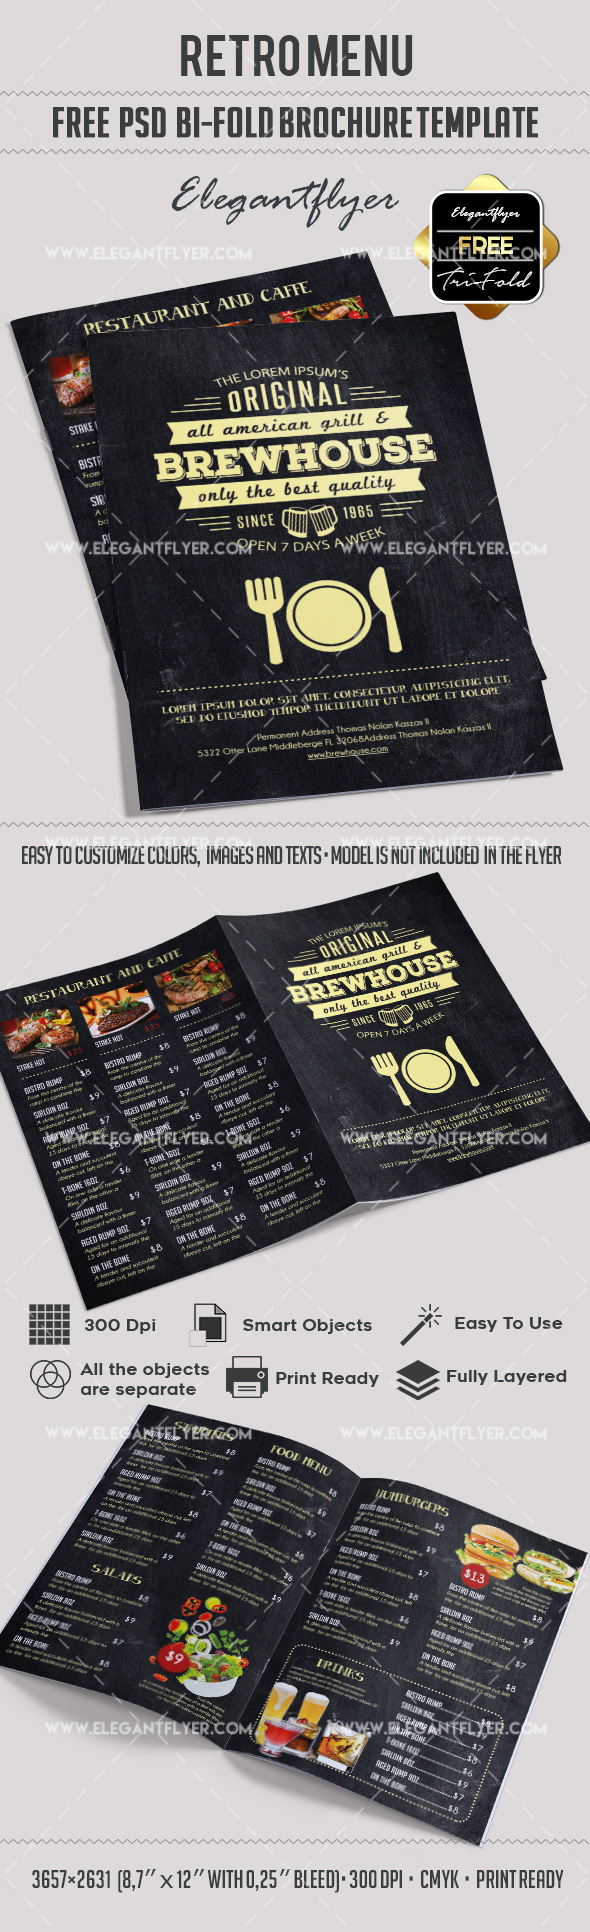 Retro Menu – Free Bi-Fold PSD Brochure Template Food Menu